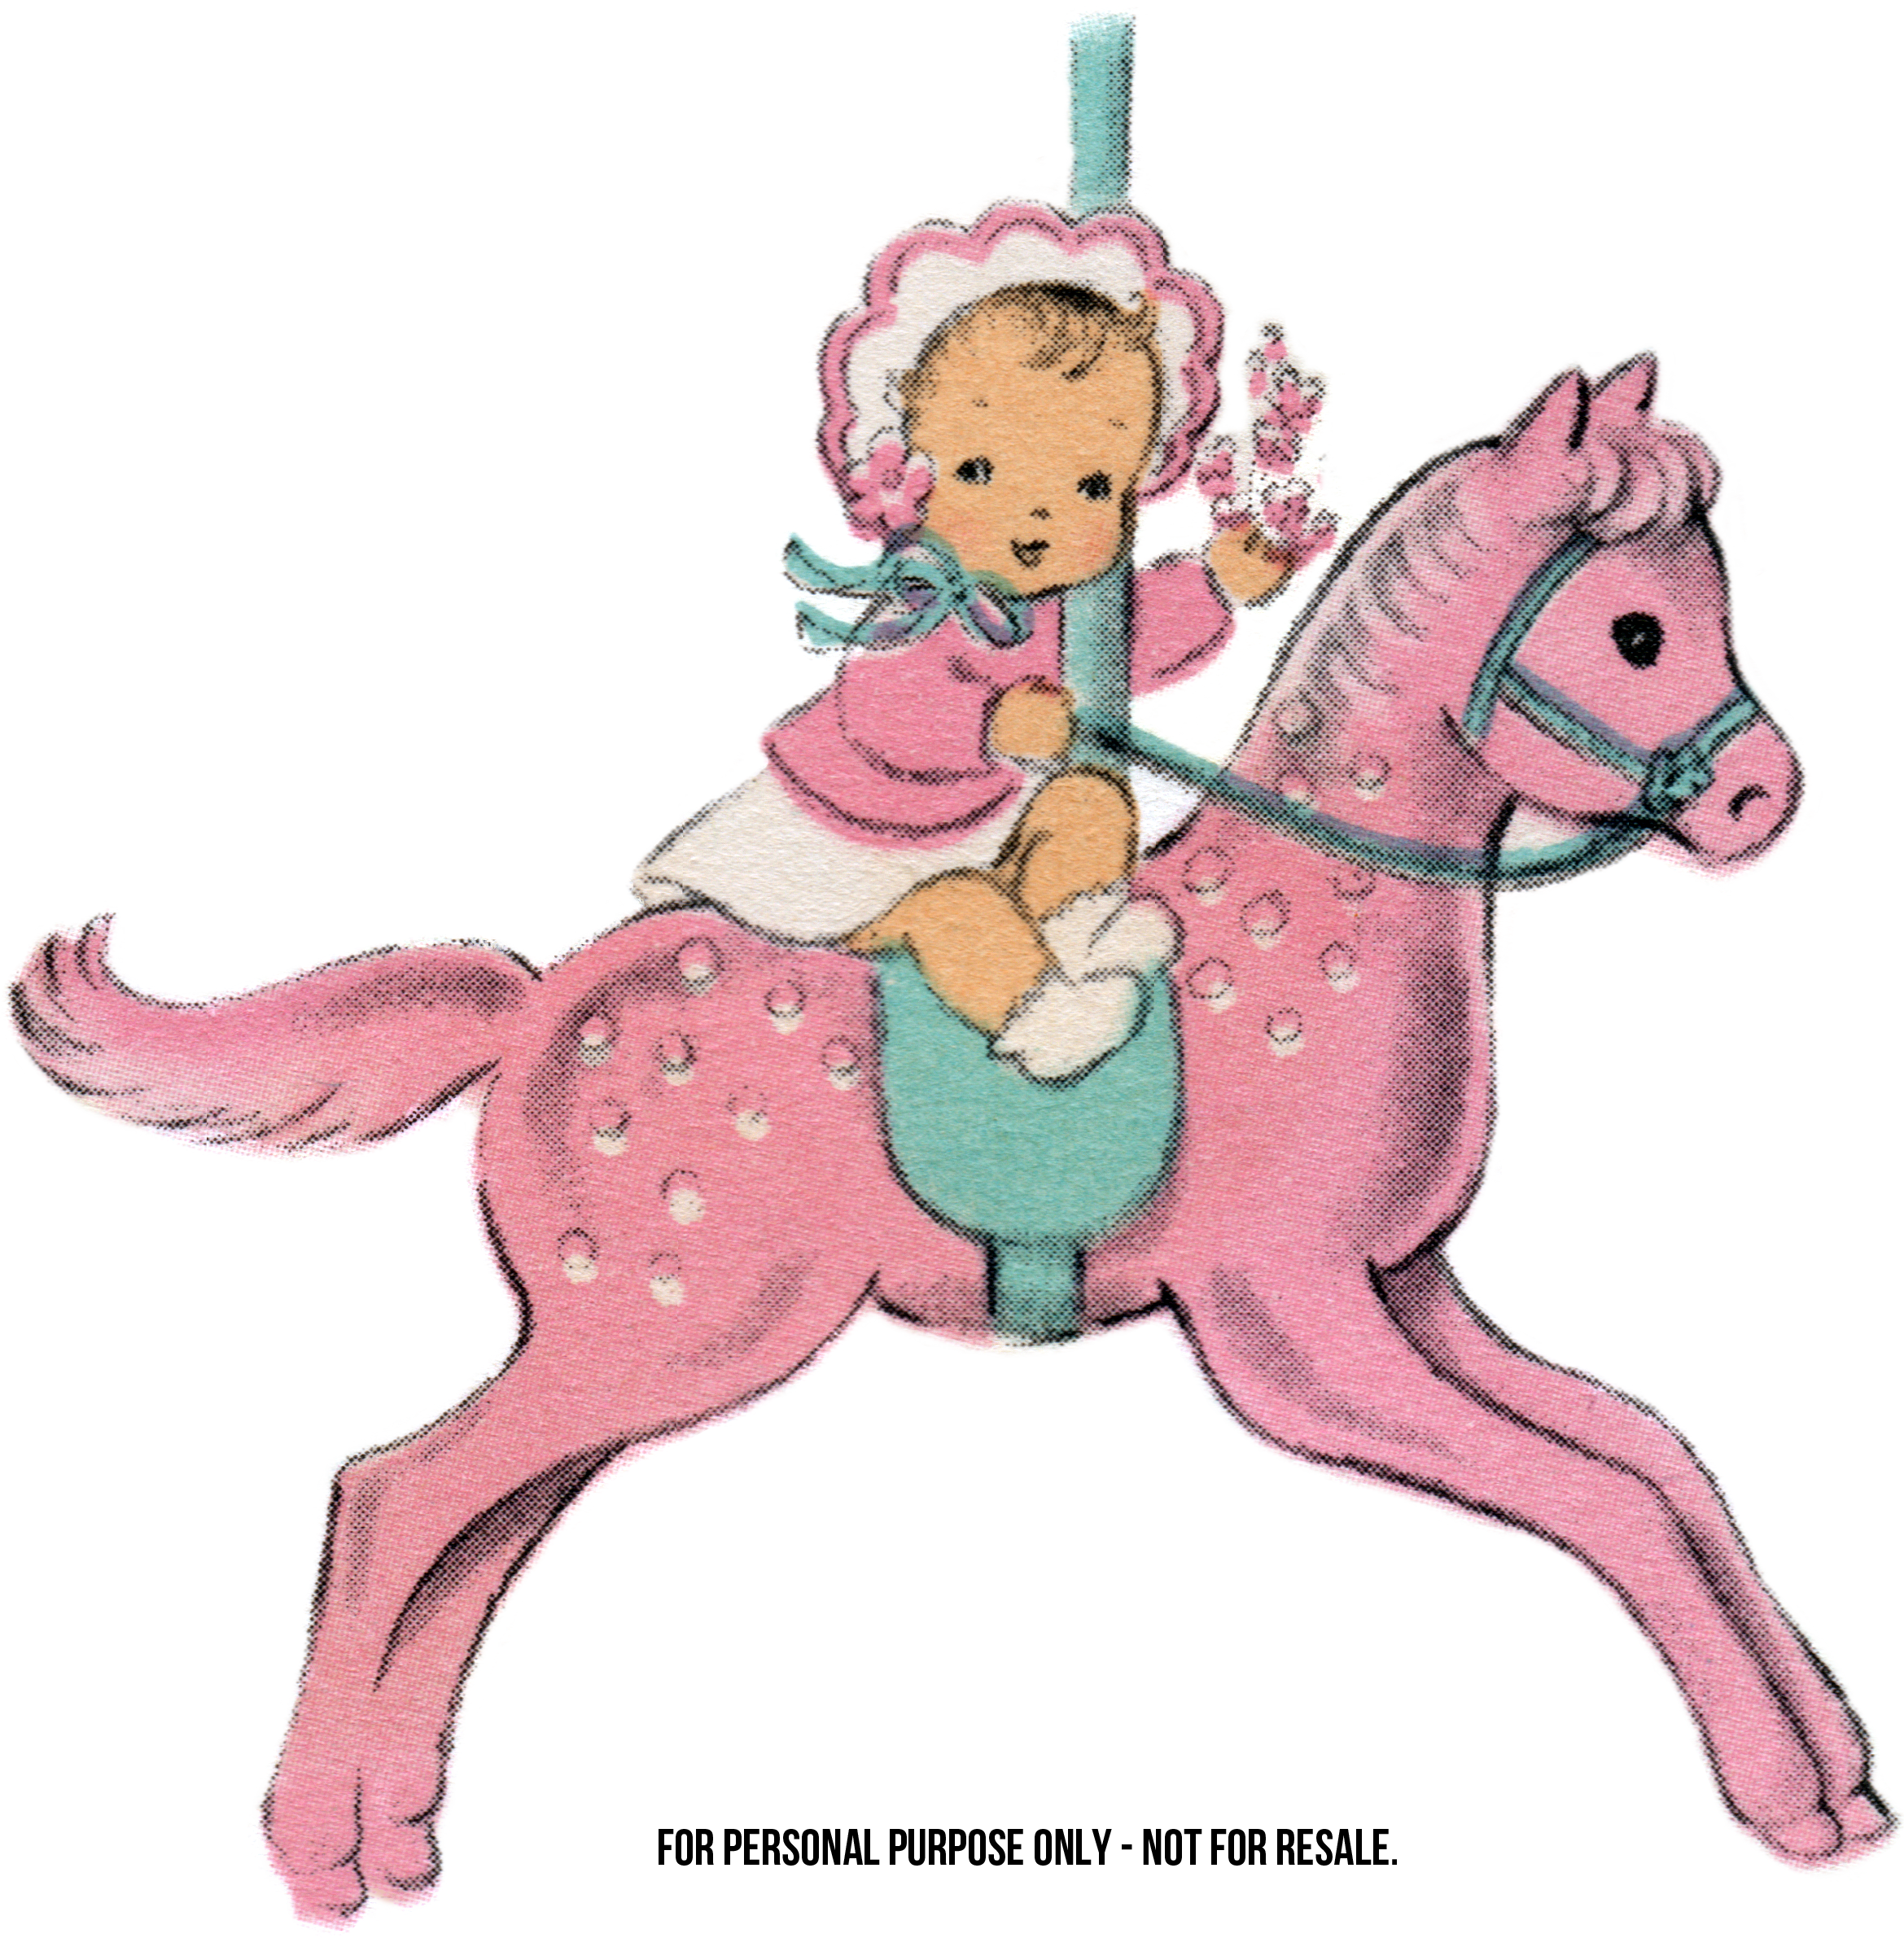 Baby Clip Art: Pretty in Pink - Free Pretty Things For You